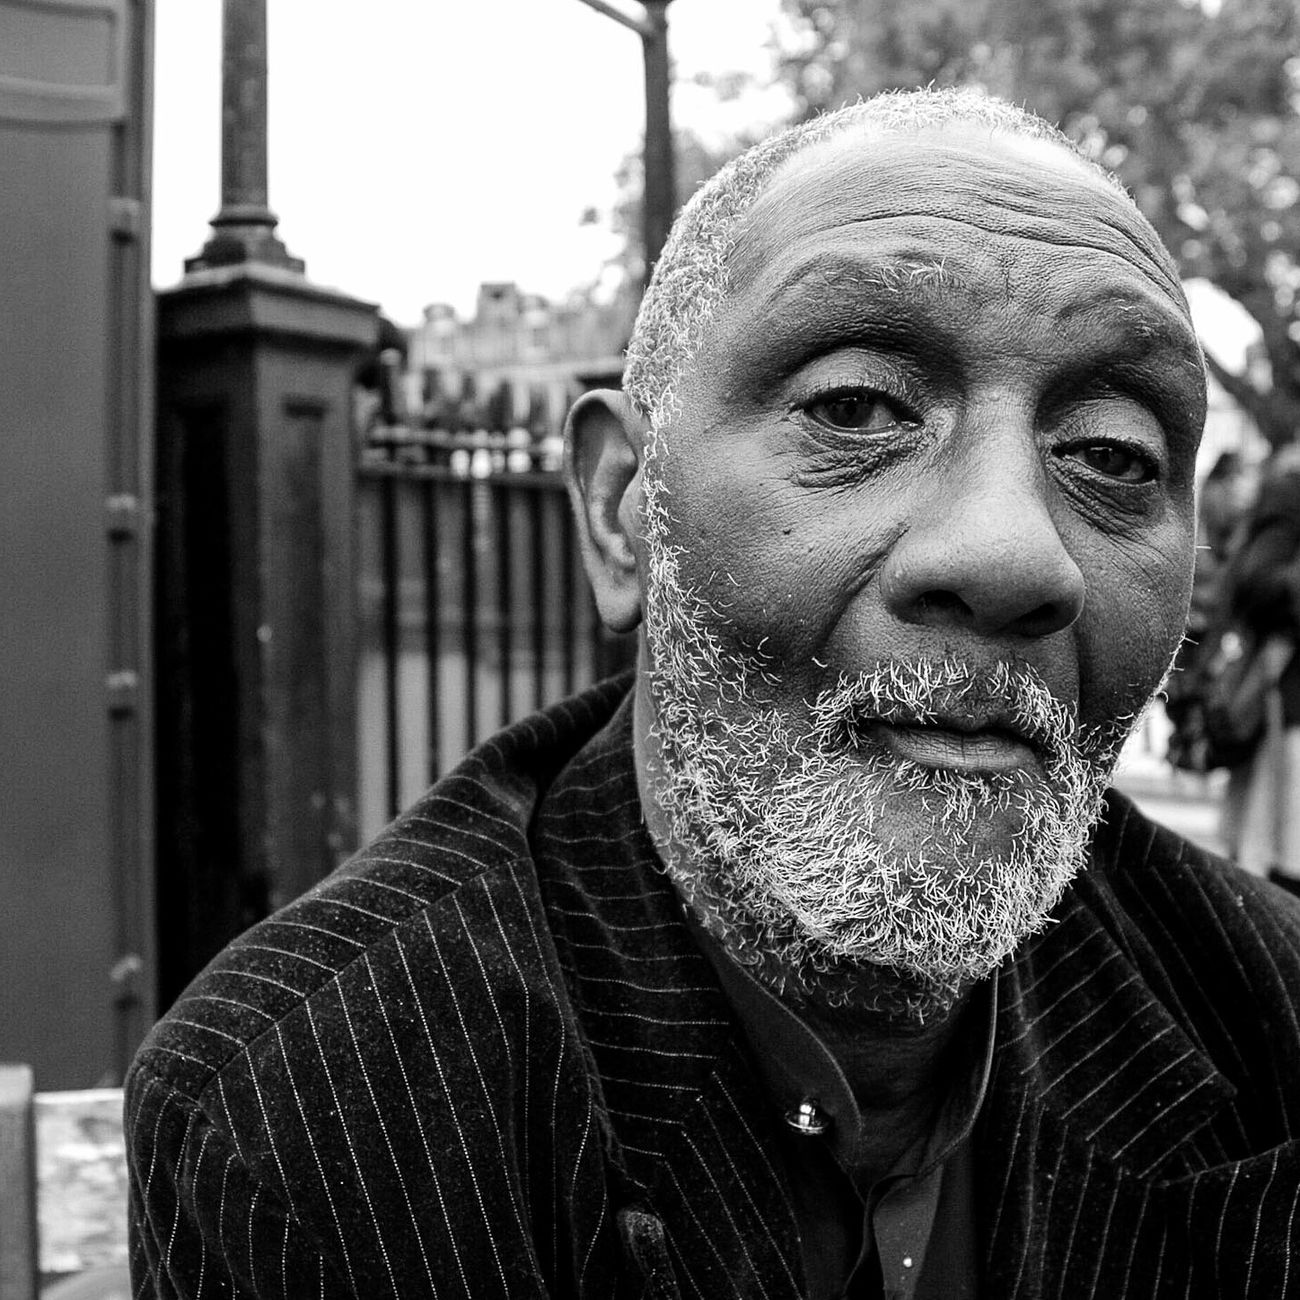 One Man Only Human Face Portrait One Person EyeEm Bnw Close-up City Outdoors Day Streetphotography Melanin Portraits March Cultures Grey Hair Street People Face Urban City Man Sitting Outside Beauty Photooftheday Black & White Blackandwhite